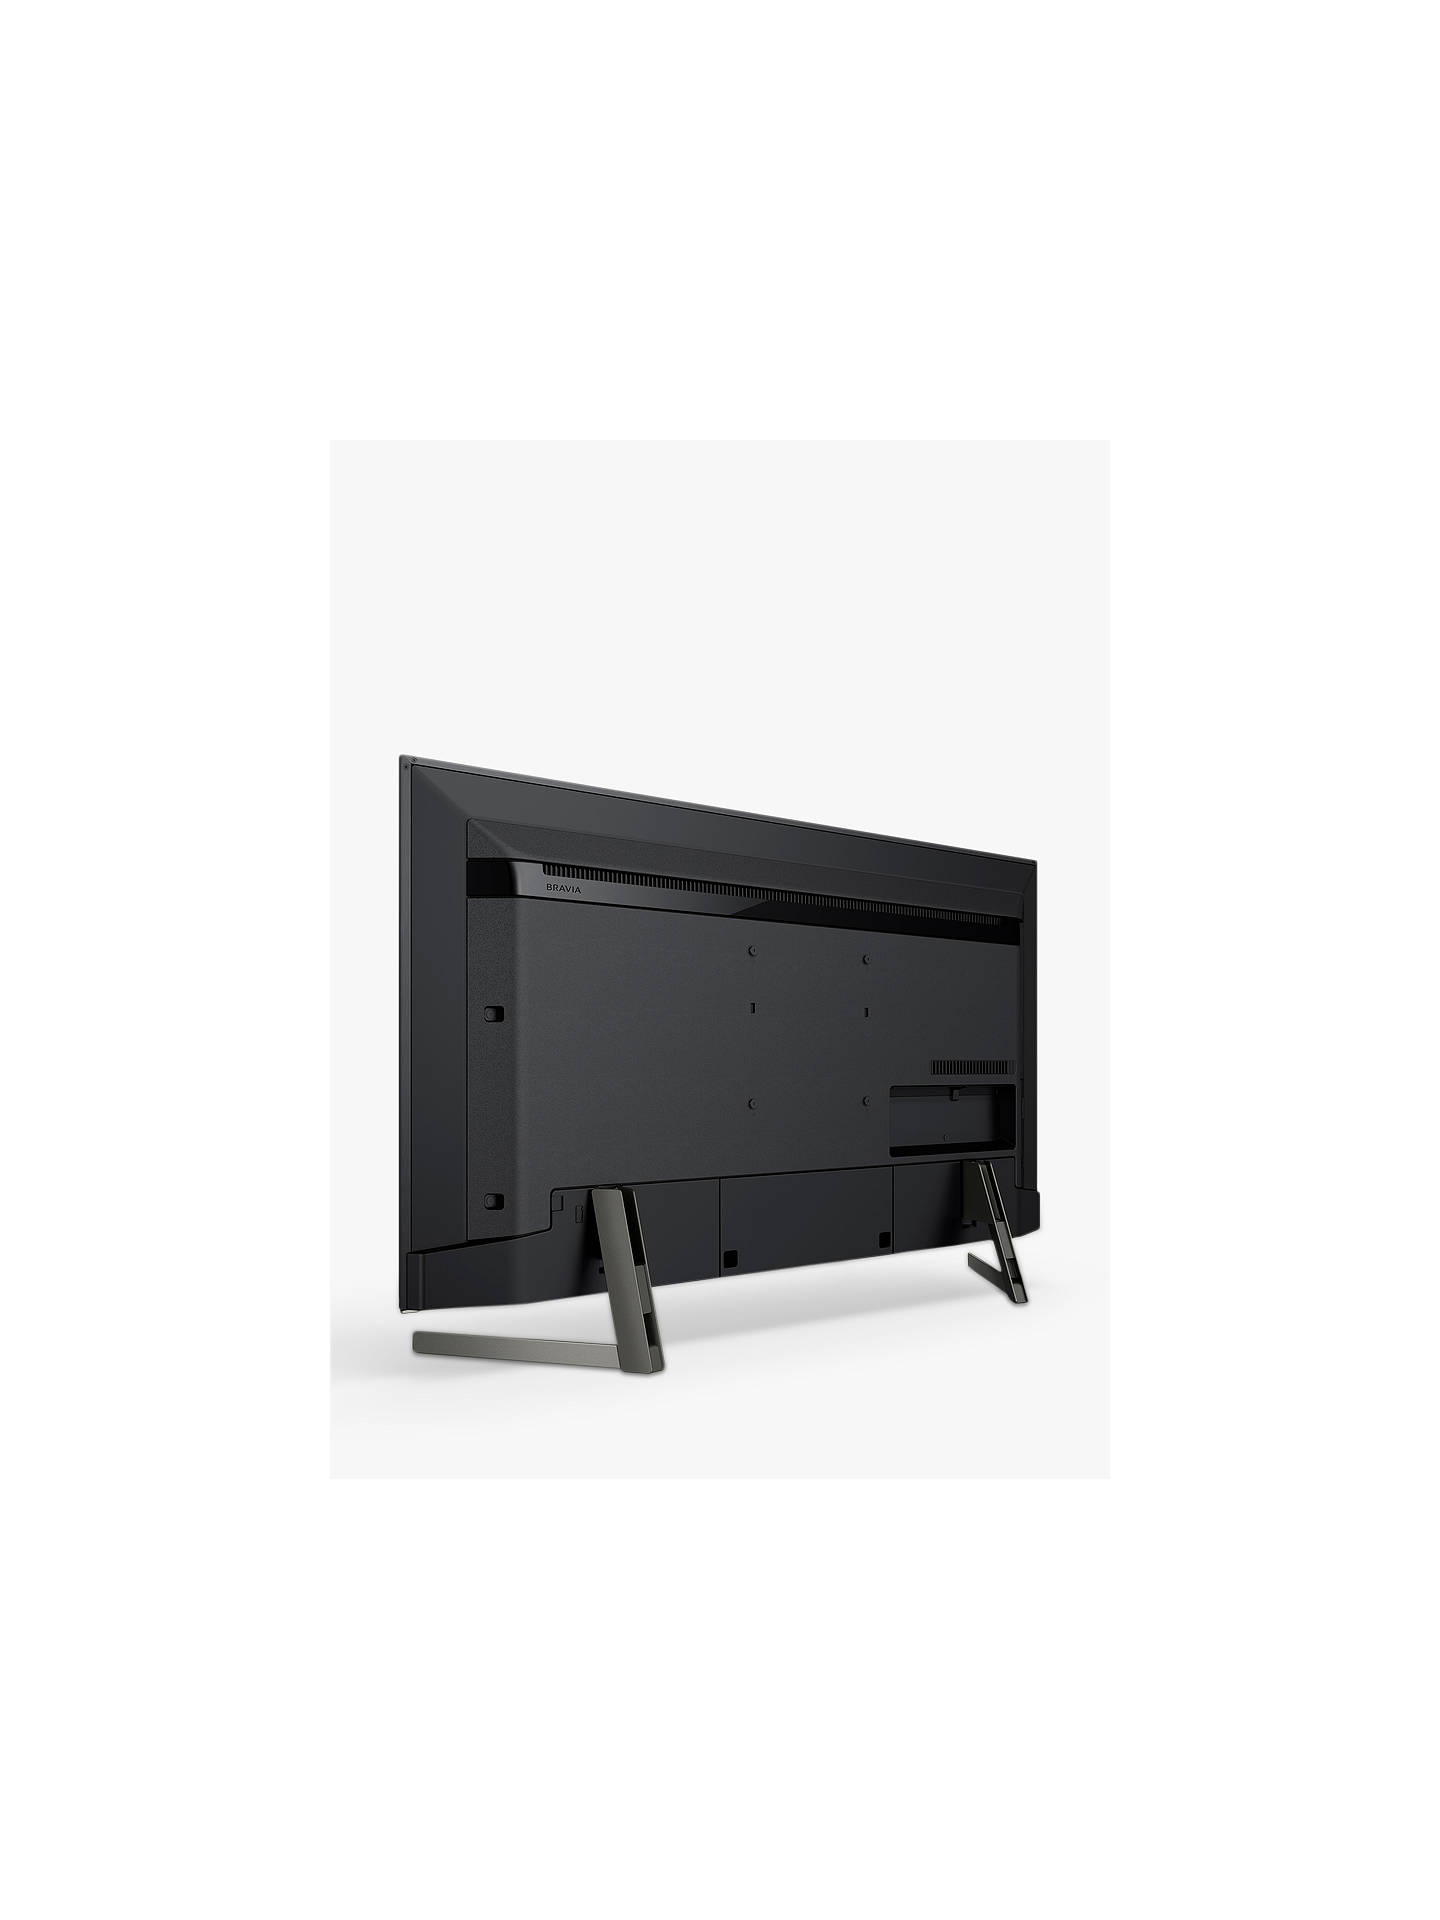 "Buy Sony Bravia KD49XG9005 (2019) LED HDR 4K Ultra HD Smart Android TV, 49"" with Freeview HD & Youview, Black Online at johnlewis.com"